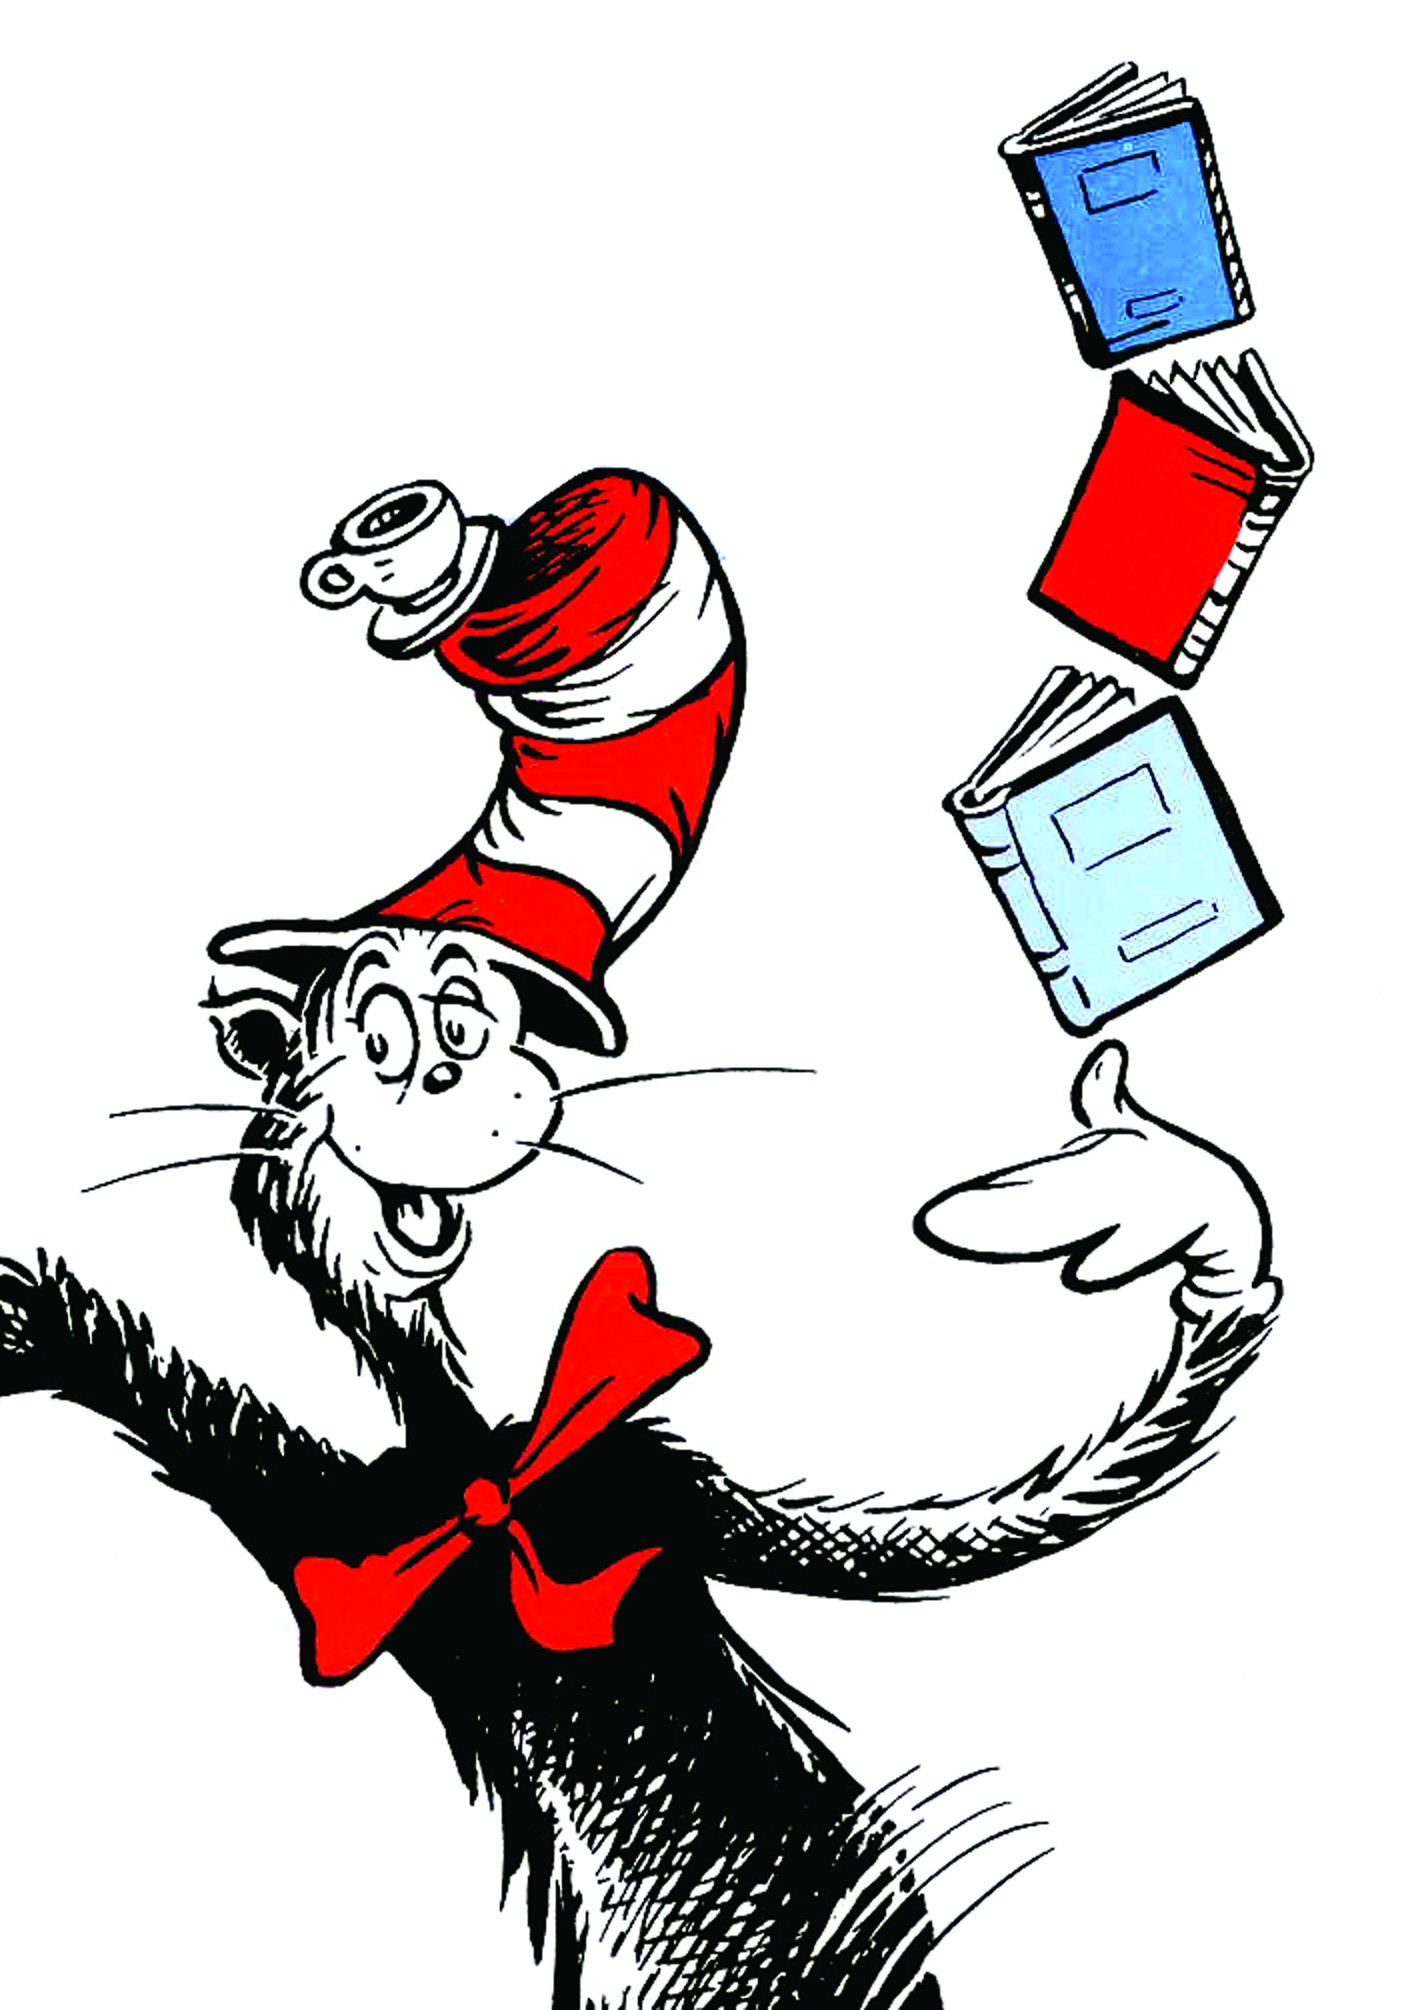 1422x2010 Dr. Seuss' Cat In The Hat Artssmart Events Trahc Texarkana